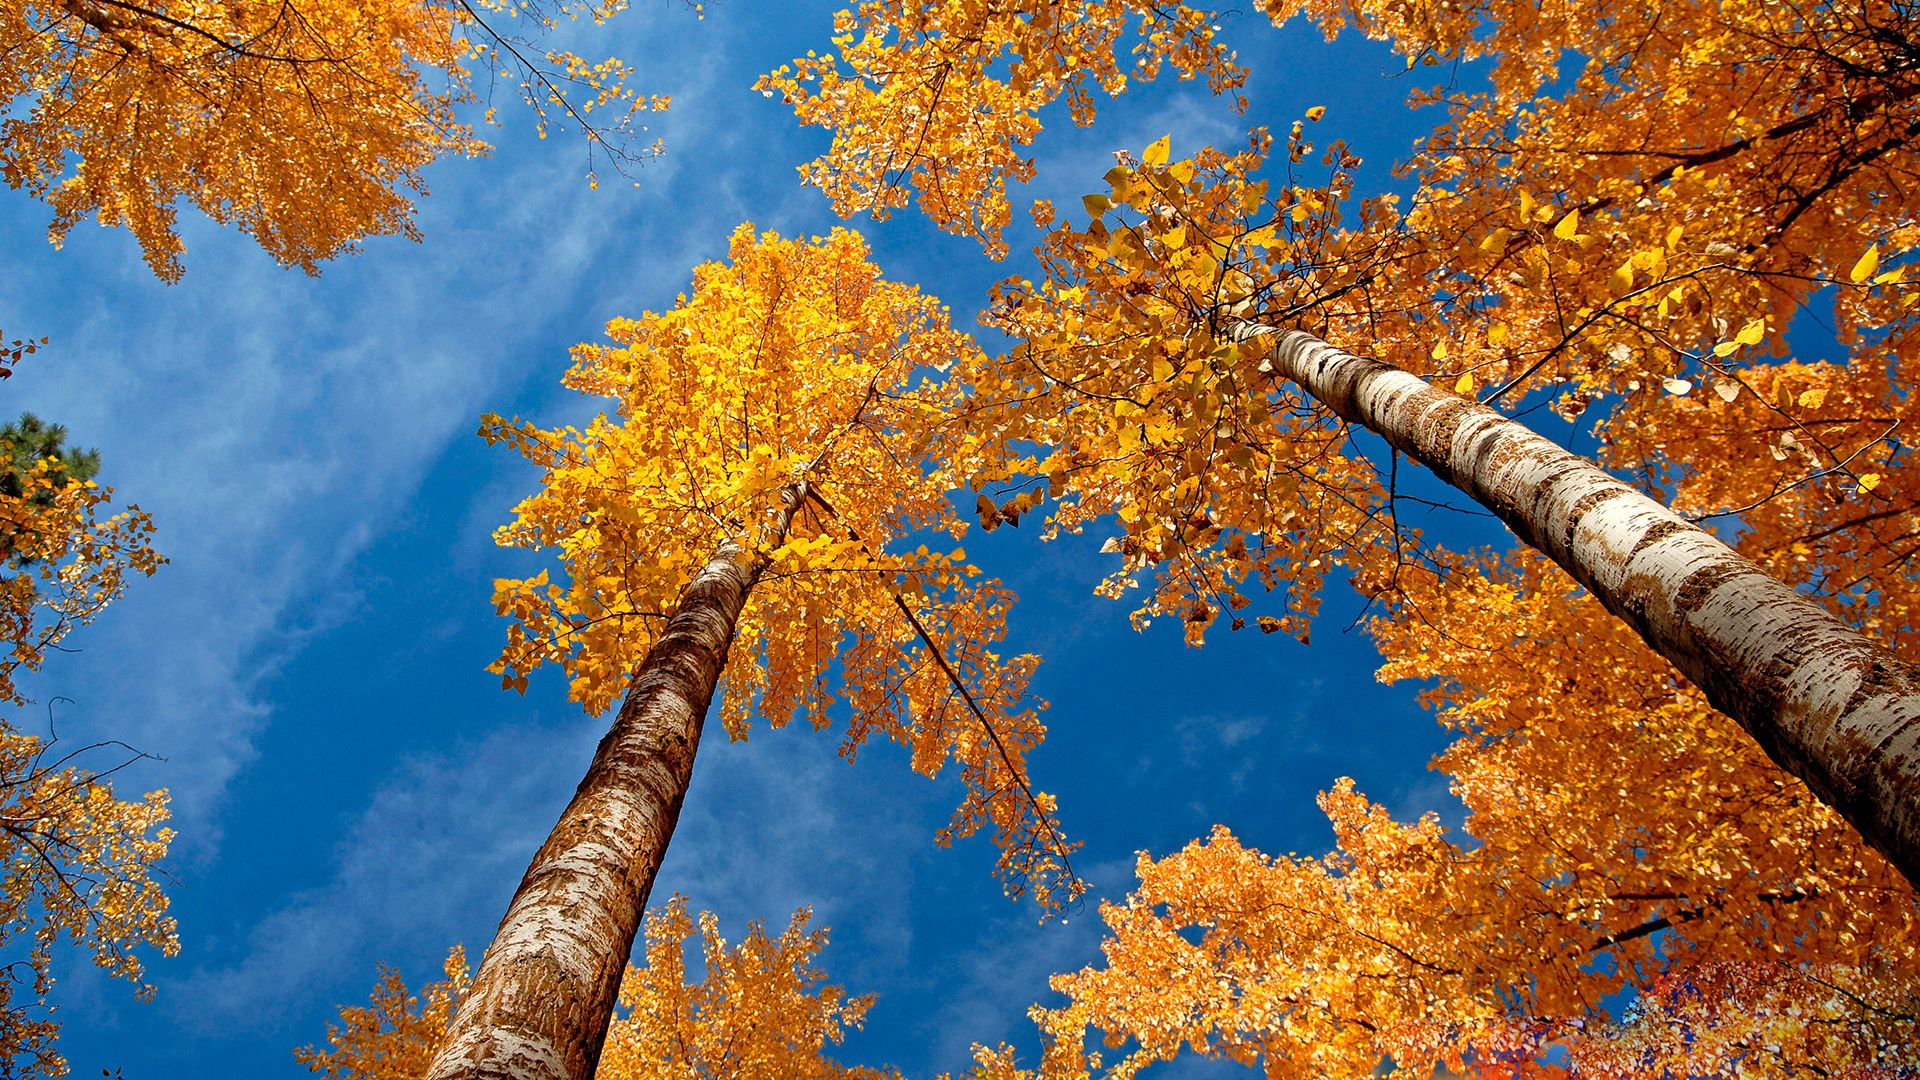 41 autumn wallpapers for computers tablets or phones